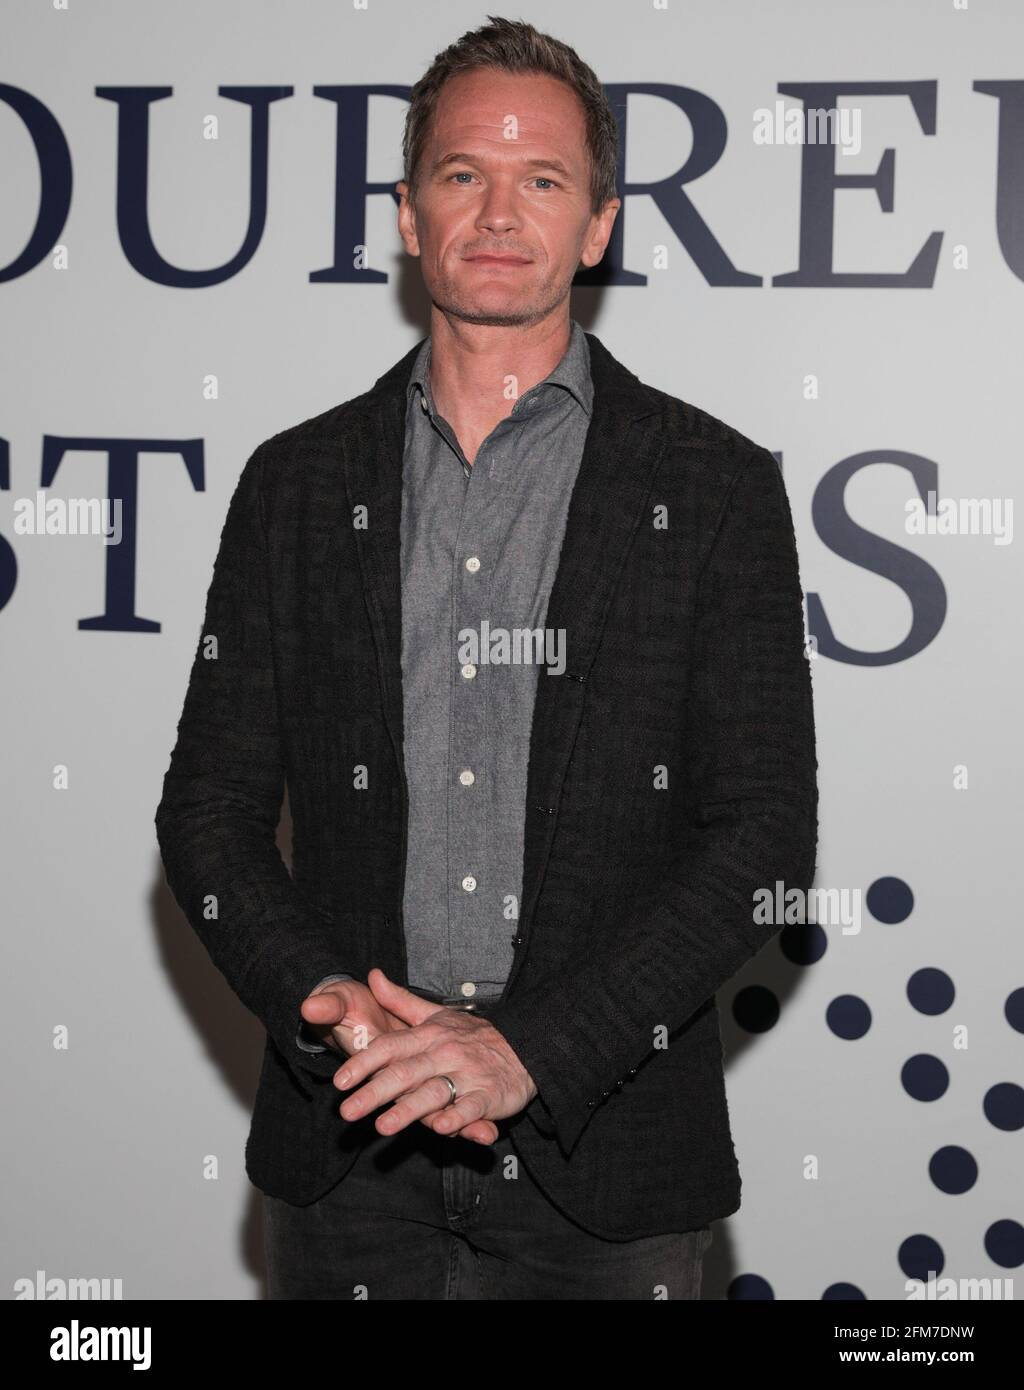 East Rutherford, NJ, USA. 6th May, 2021. Neil Patrick Harris Photo Call for CLEAR Brings Together Over 100 Family Members Separated During COVID to Reunite for the First Time, MetLife Stadium, East Rutherford, NJ May 6, 2021. Credit: CJ Rivera/Everett Collection/Alamy Live News Stock Photo